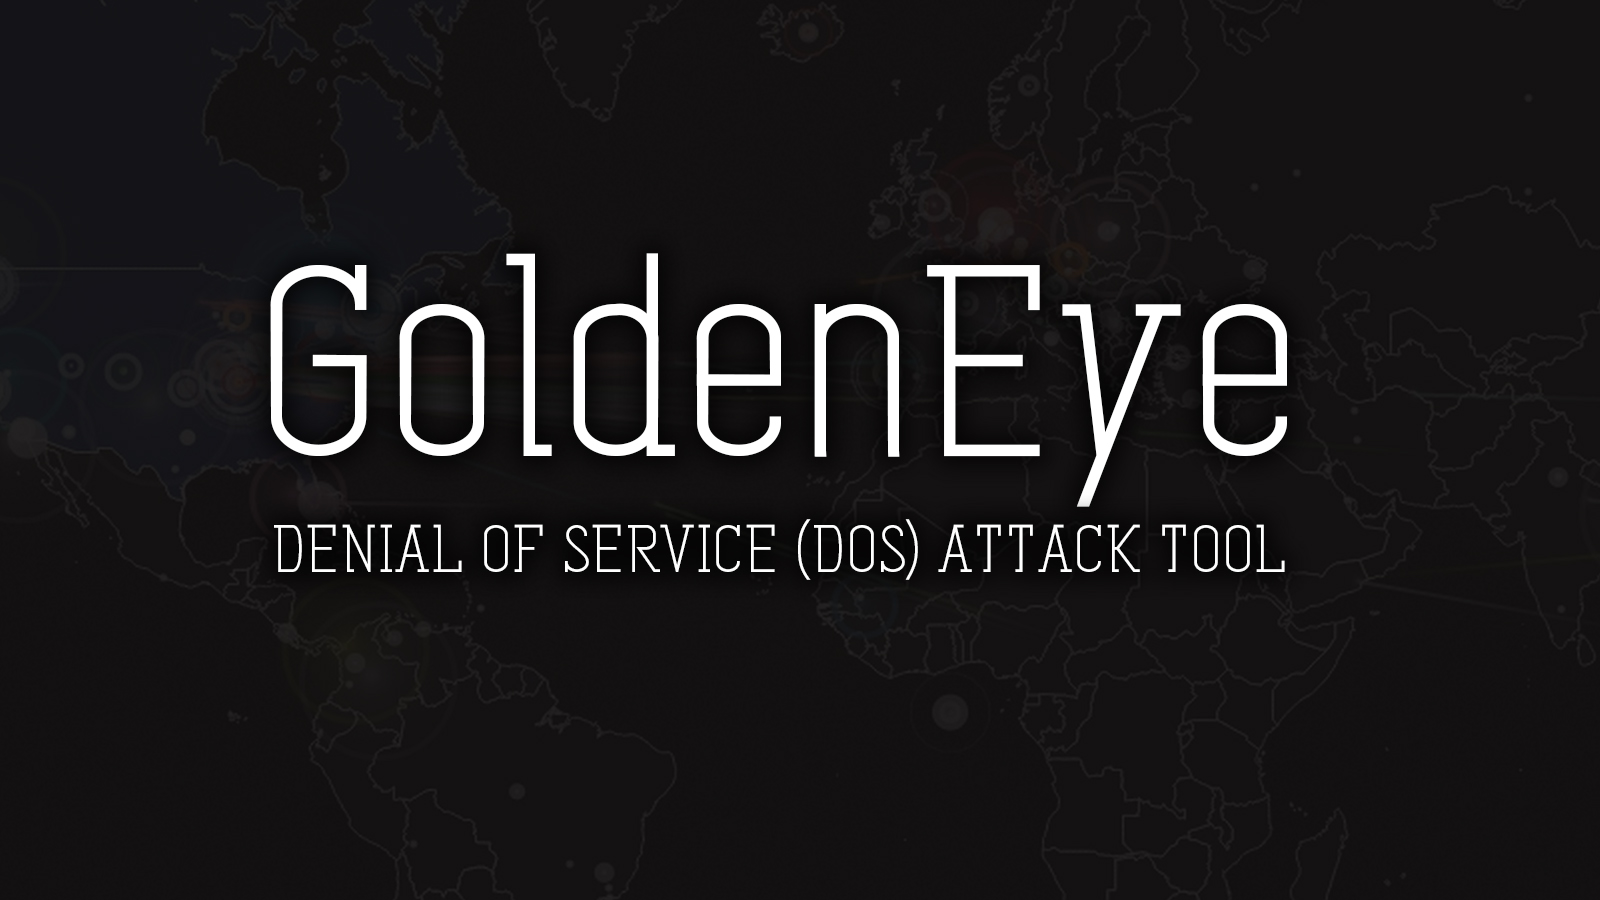 GoldenEye - Tool For Performing Denial of Service (DoS) Attacks